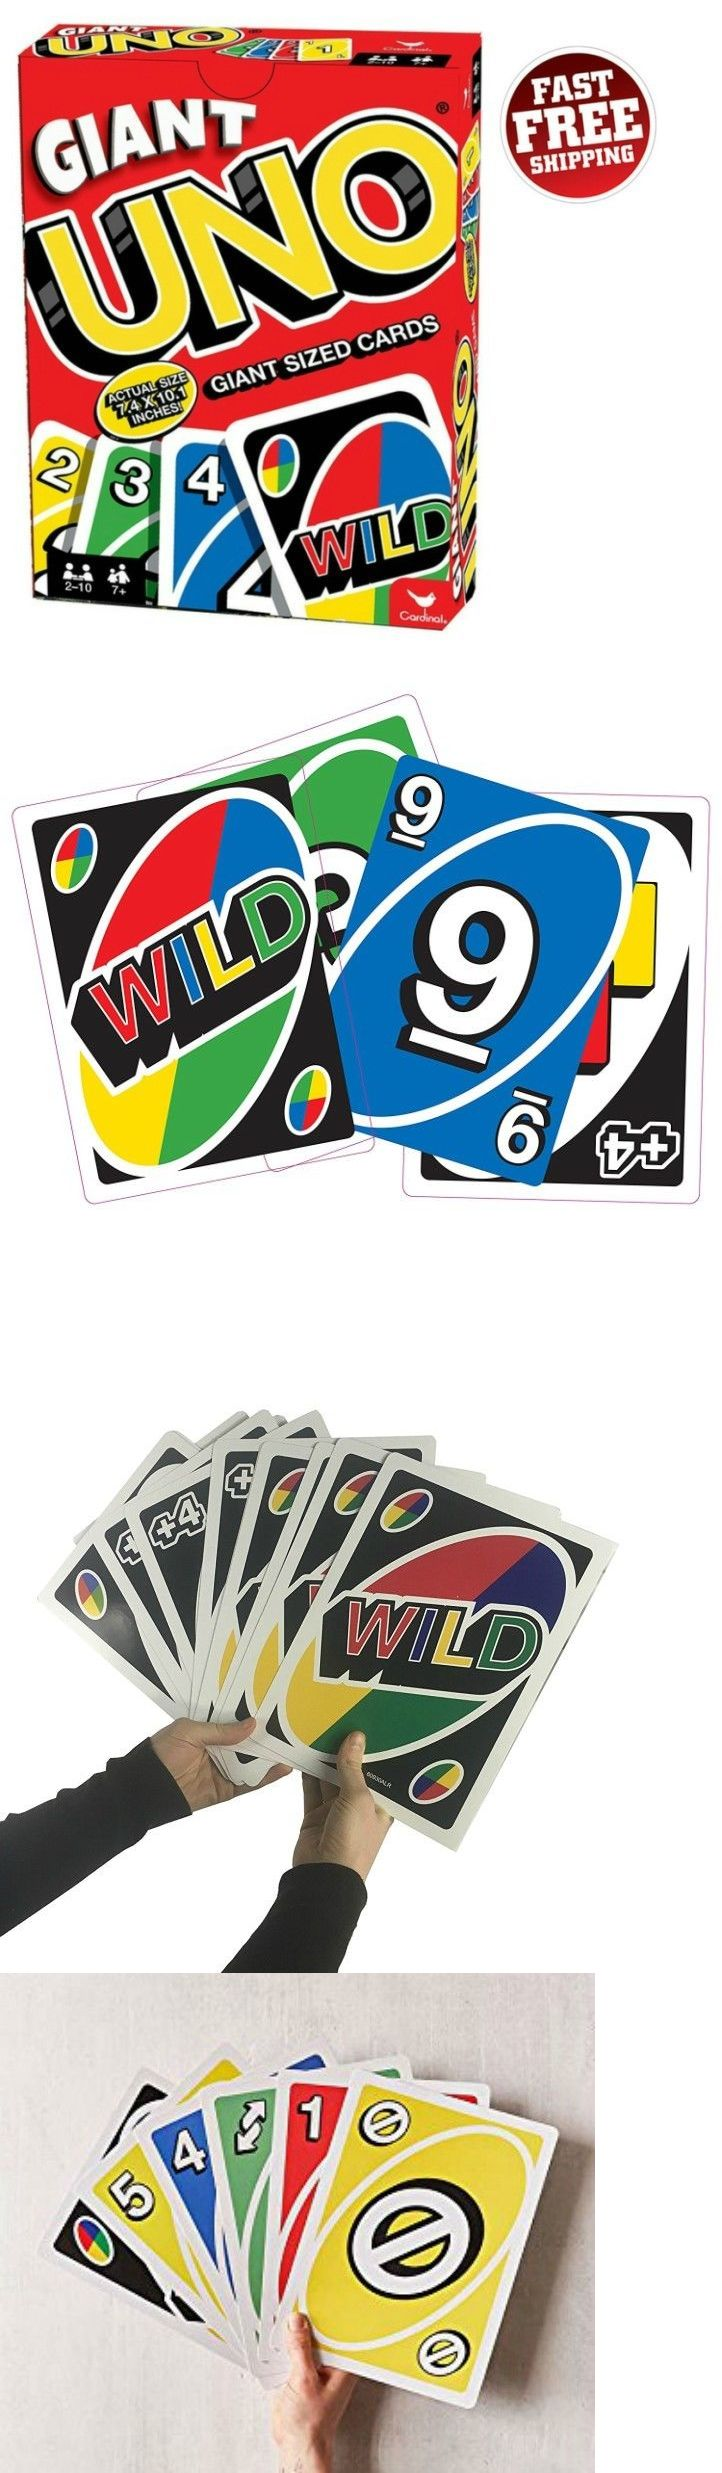 Card Games and Poker 180350 Giant Uno Playing Cards